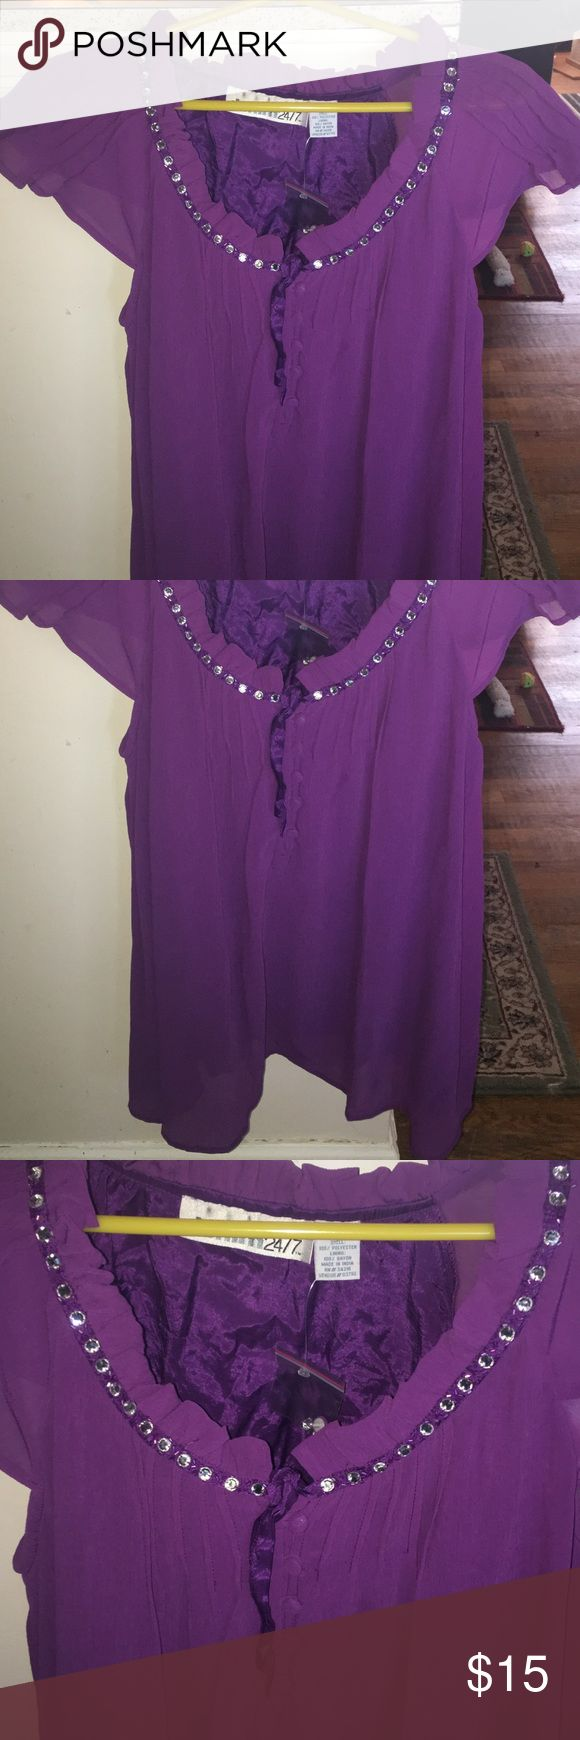 I just added this listing on Poshmark: Denim 24/7 GREY Purple rhinestone shirt ~ light. #shopmycloset #poshmark #fashion #shopping #style #forsale #Denim 24/7 #Tops